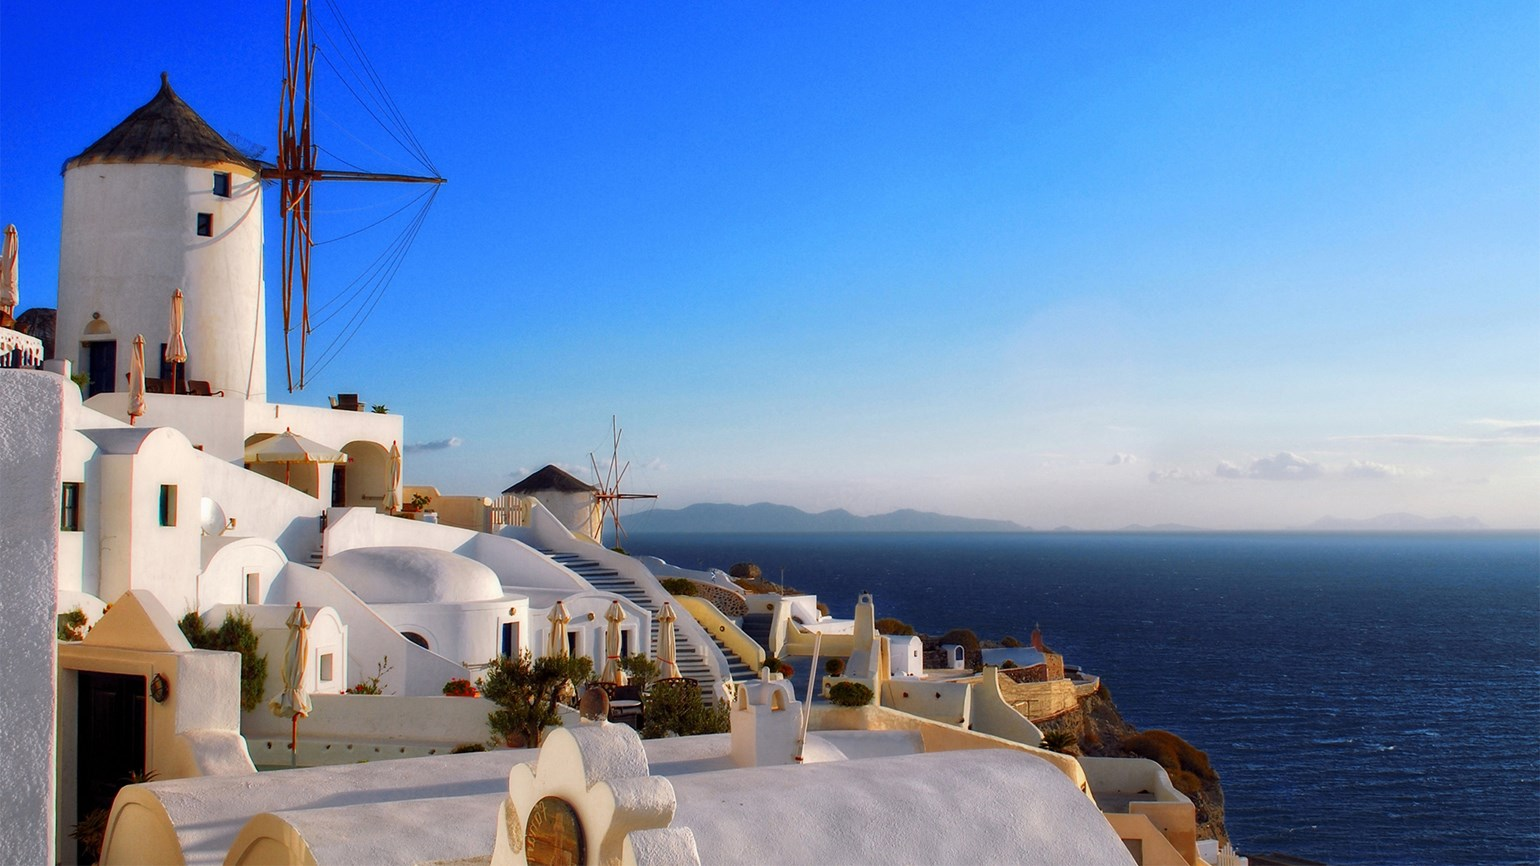 Greece tour, $1,095